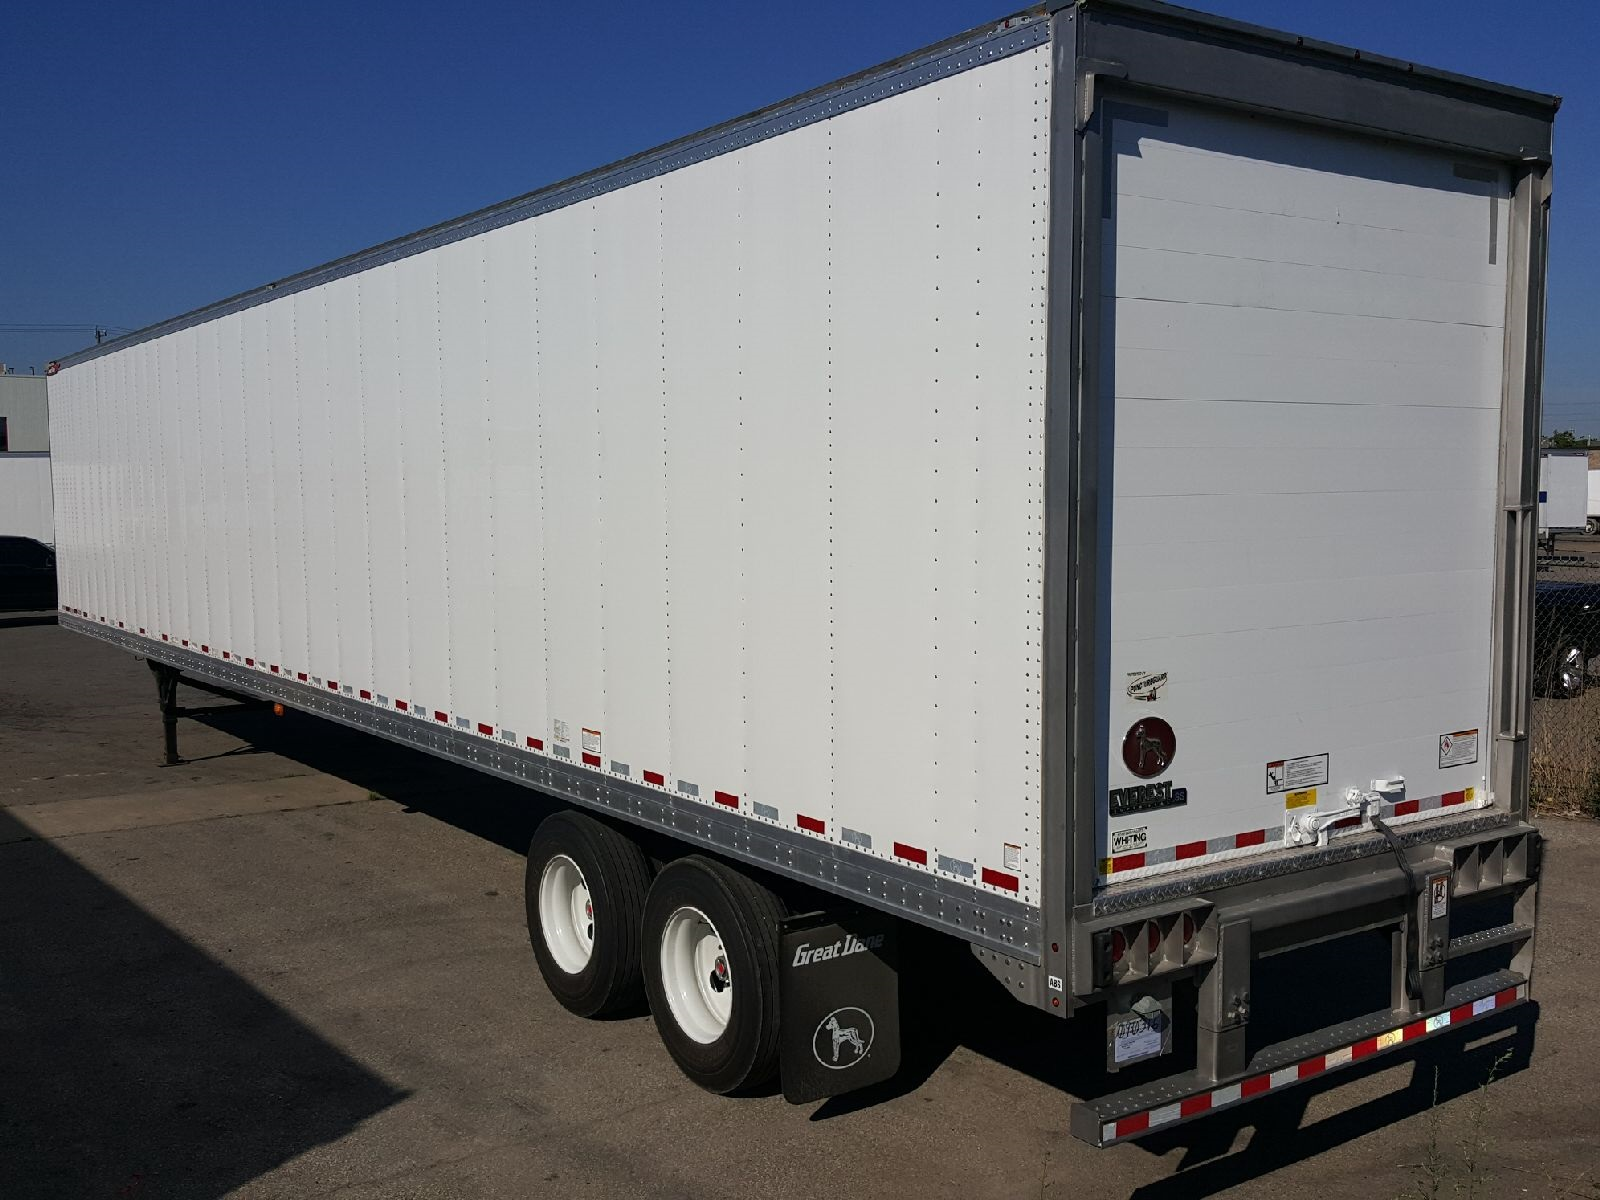 2021 GREAT DANE EVEREST TANDEM 53' ROLL UP DOOR REEFER TRAILERS